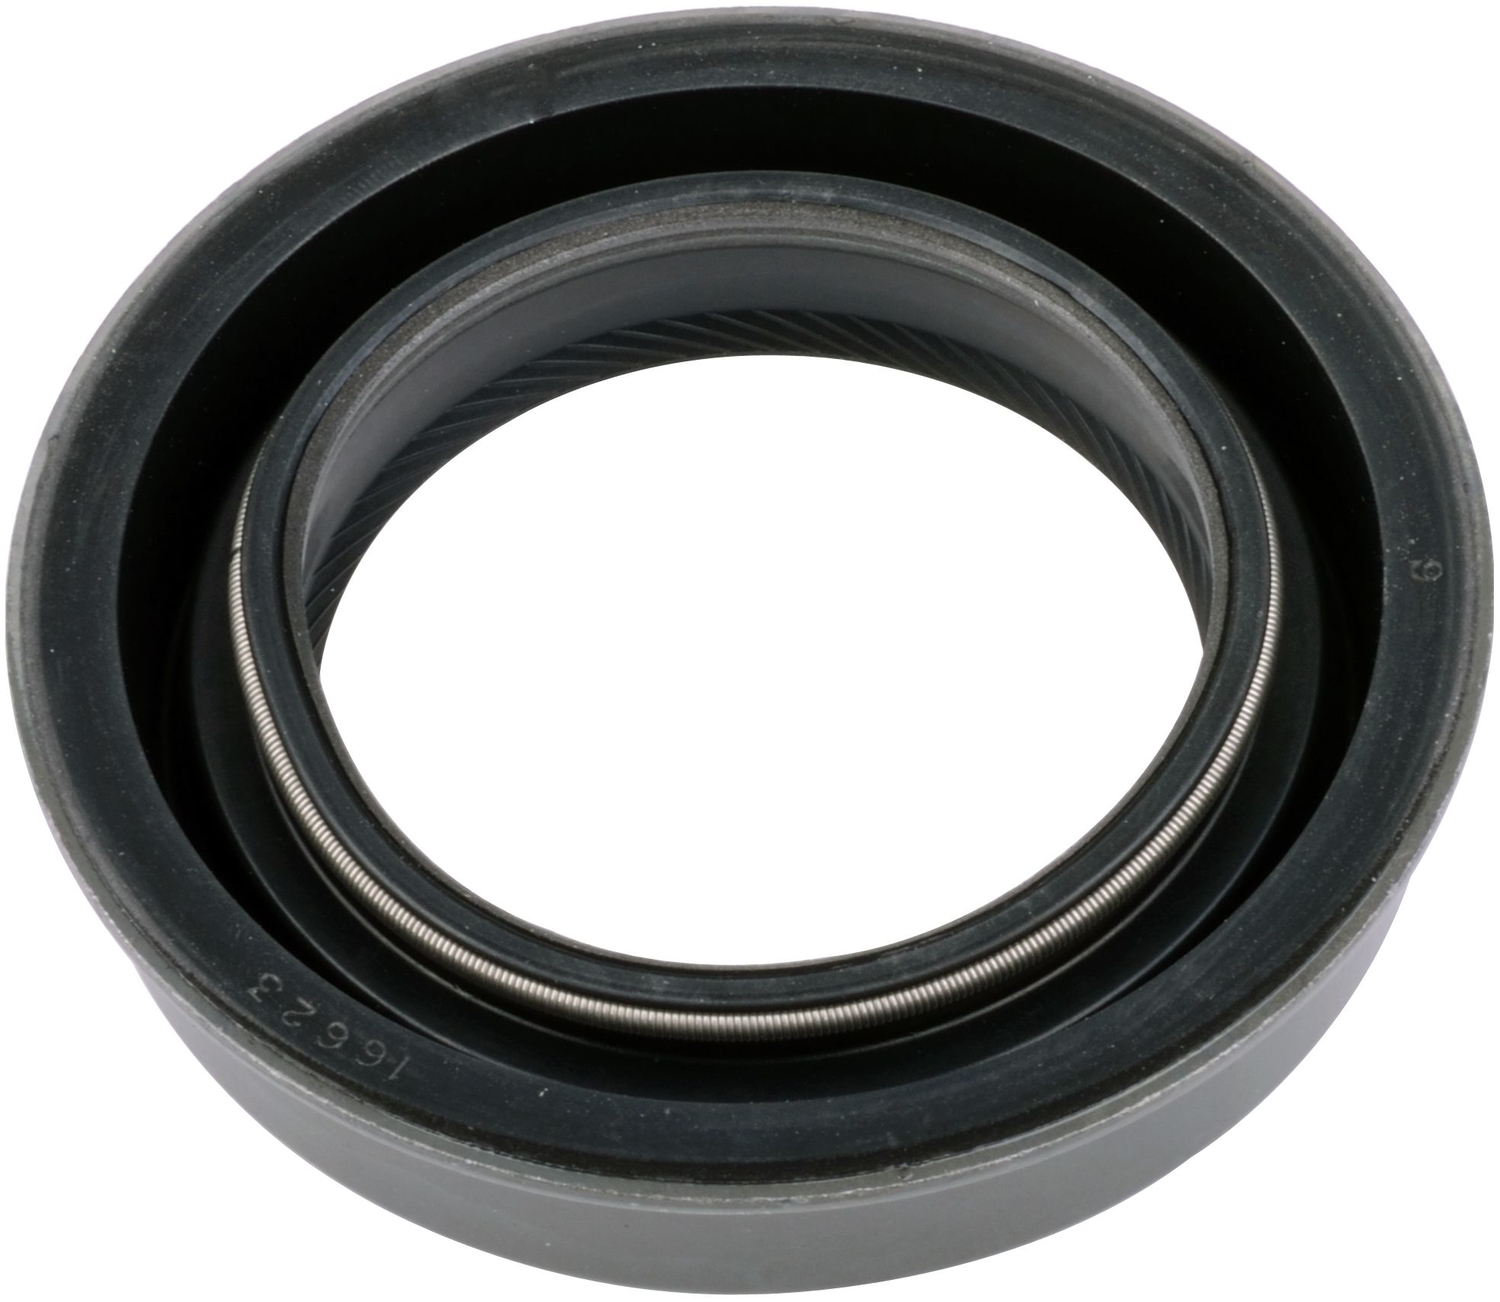 transfer case output shaft seal fits 1998 2002 mercury. Black Bedroom Furniture Sets. Home Design Ideas